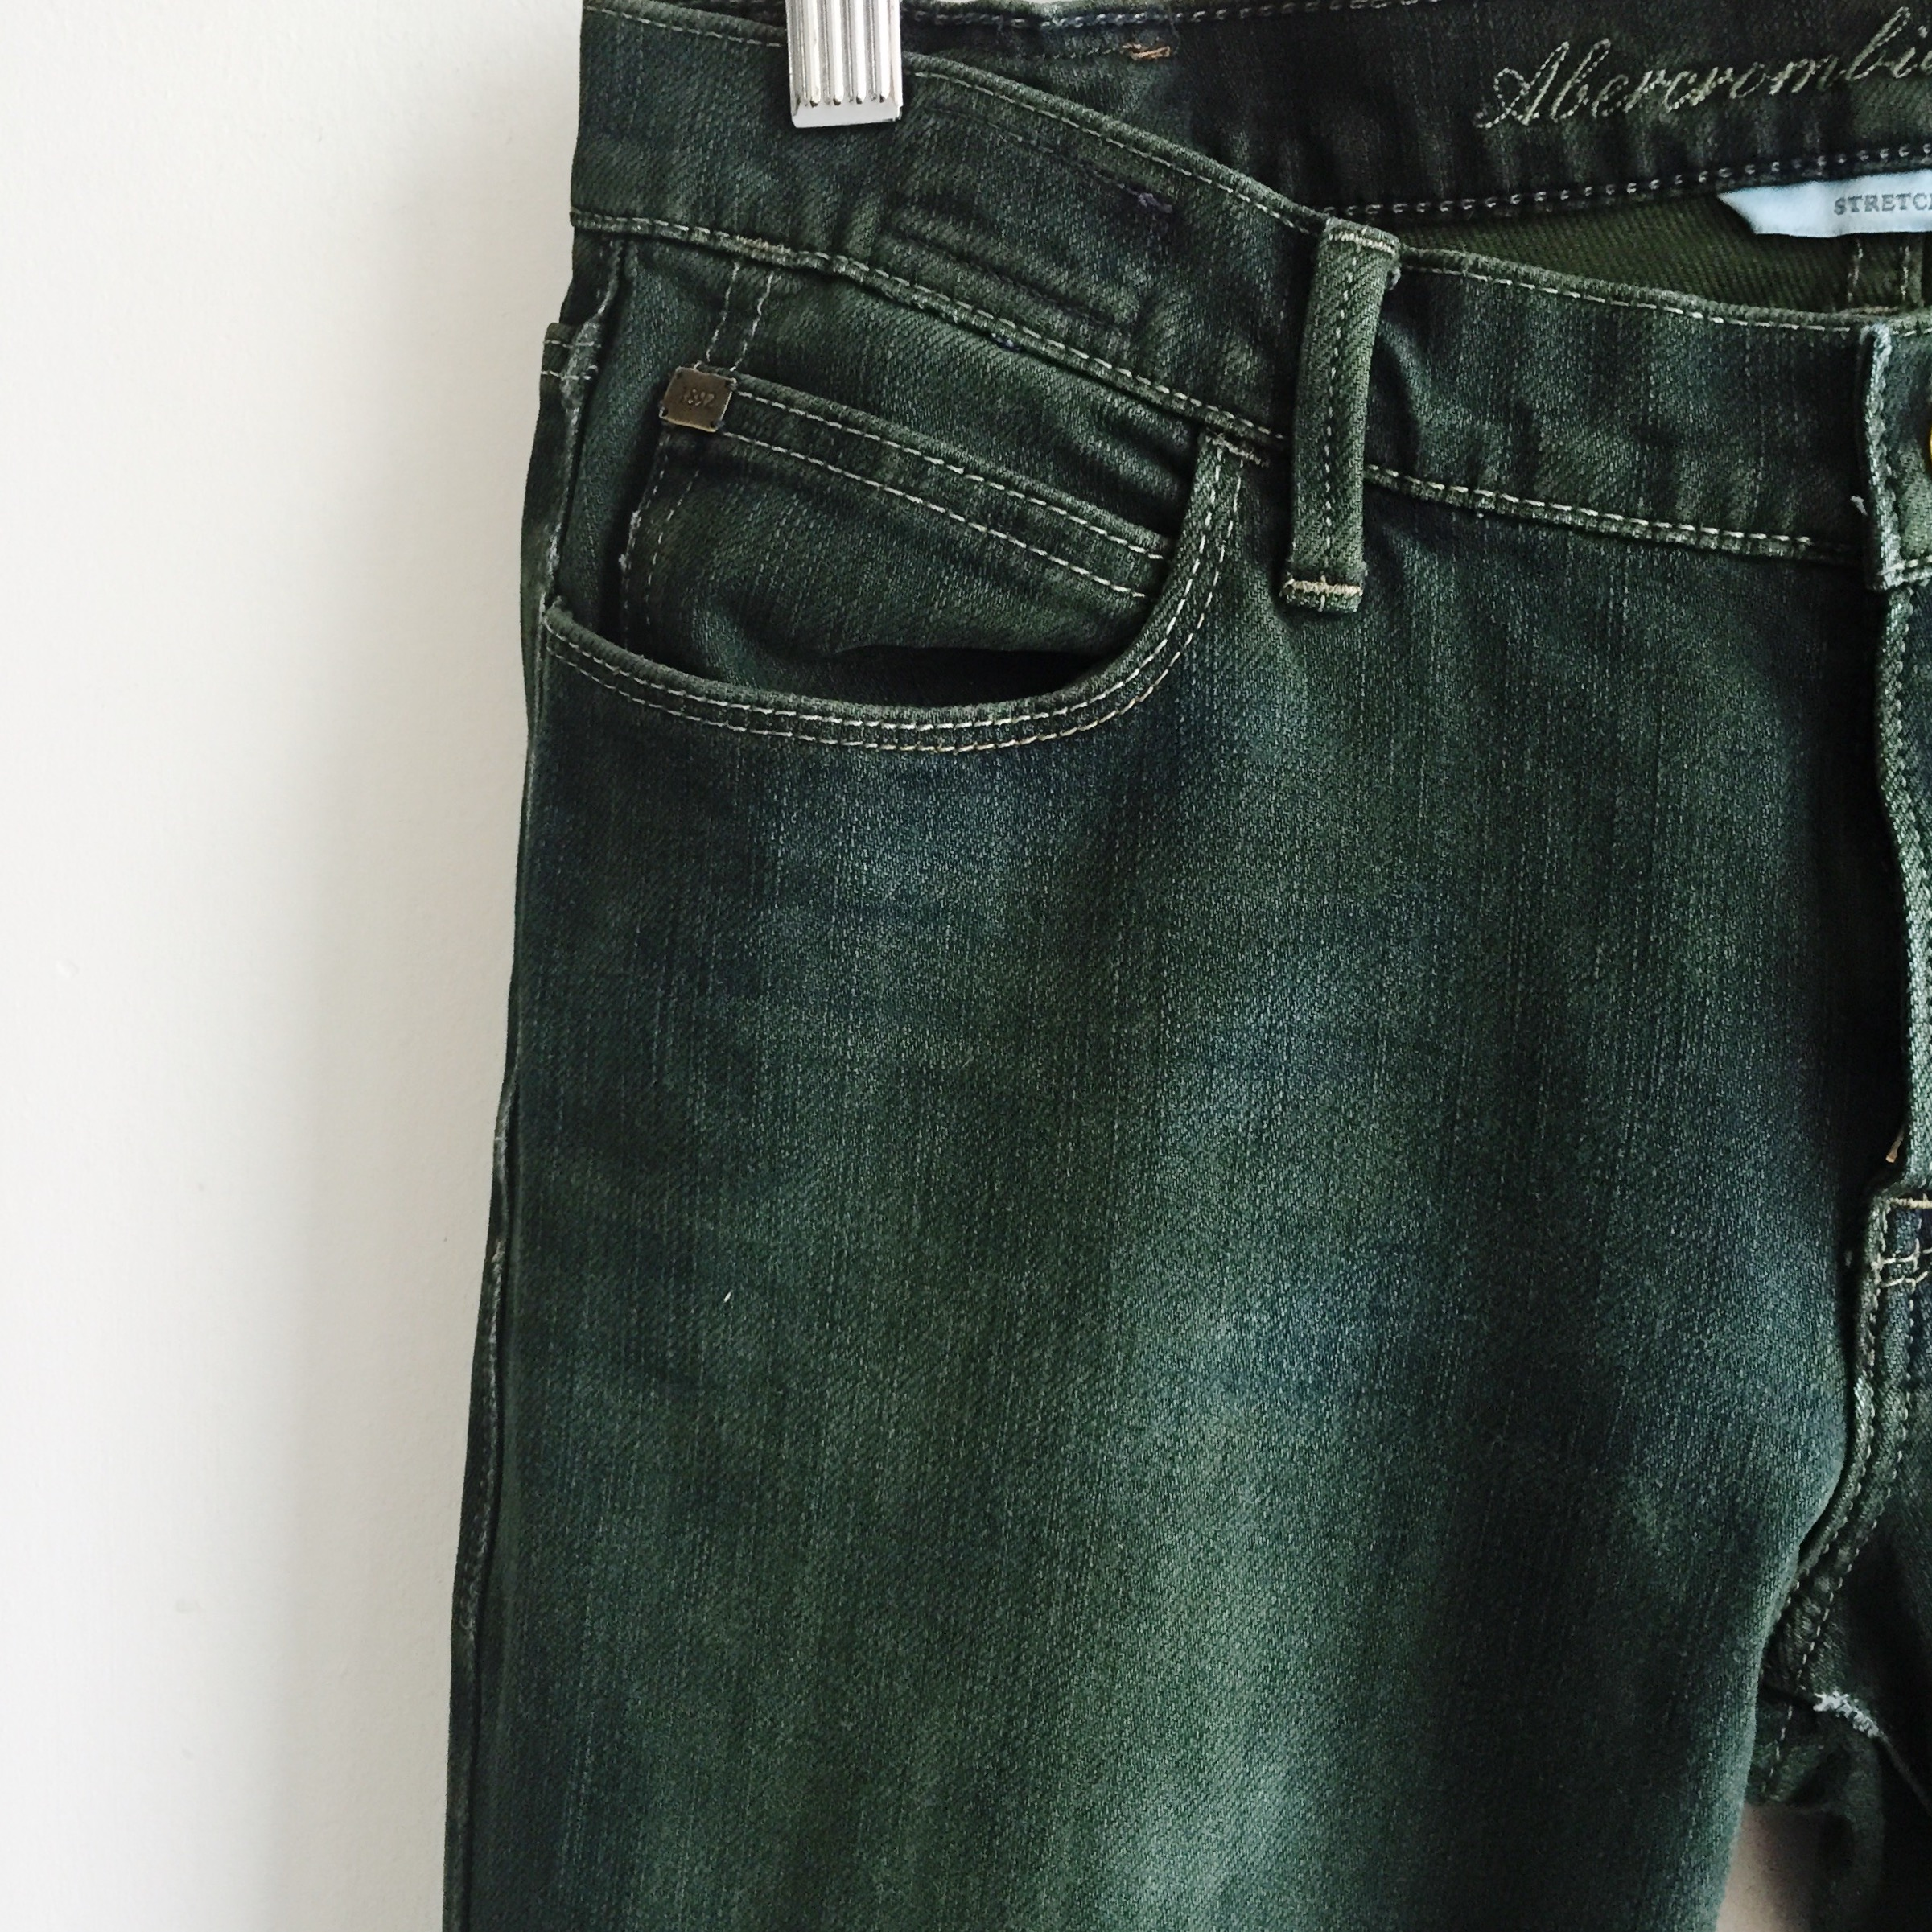 reworked jeans with Dylon